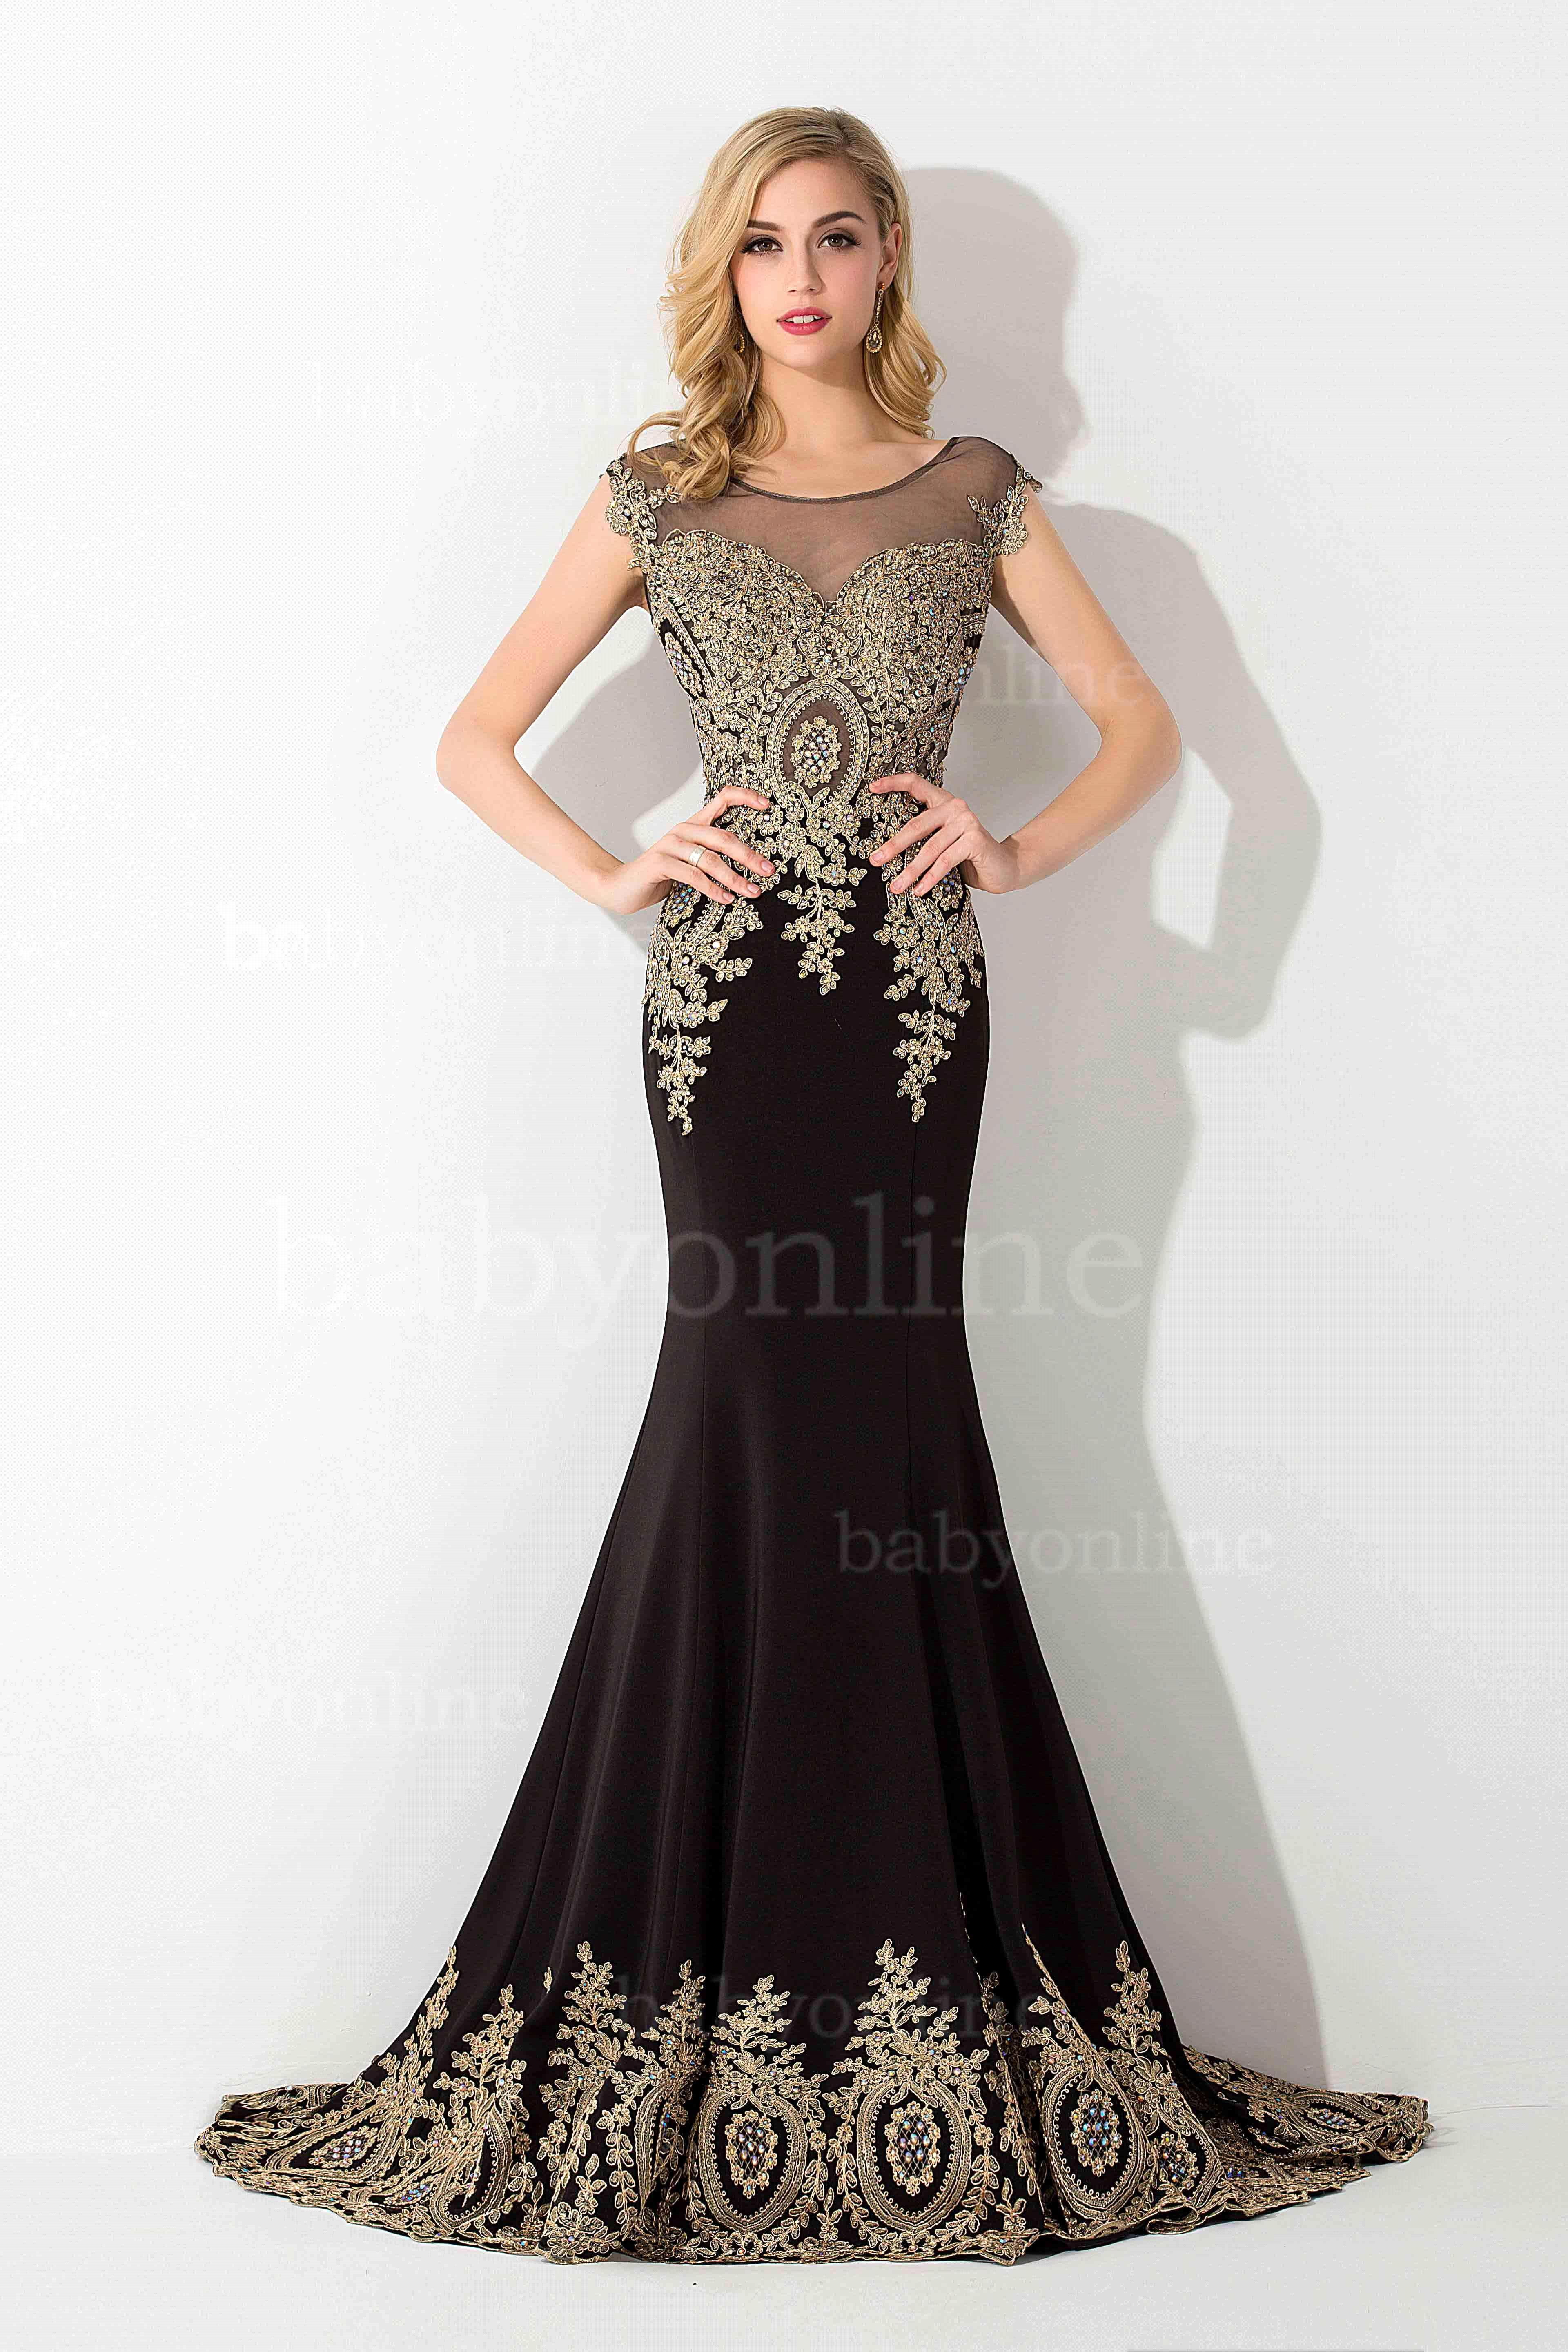 Evening dresses photo: Size 18 evening dresses with sleeves